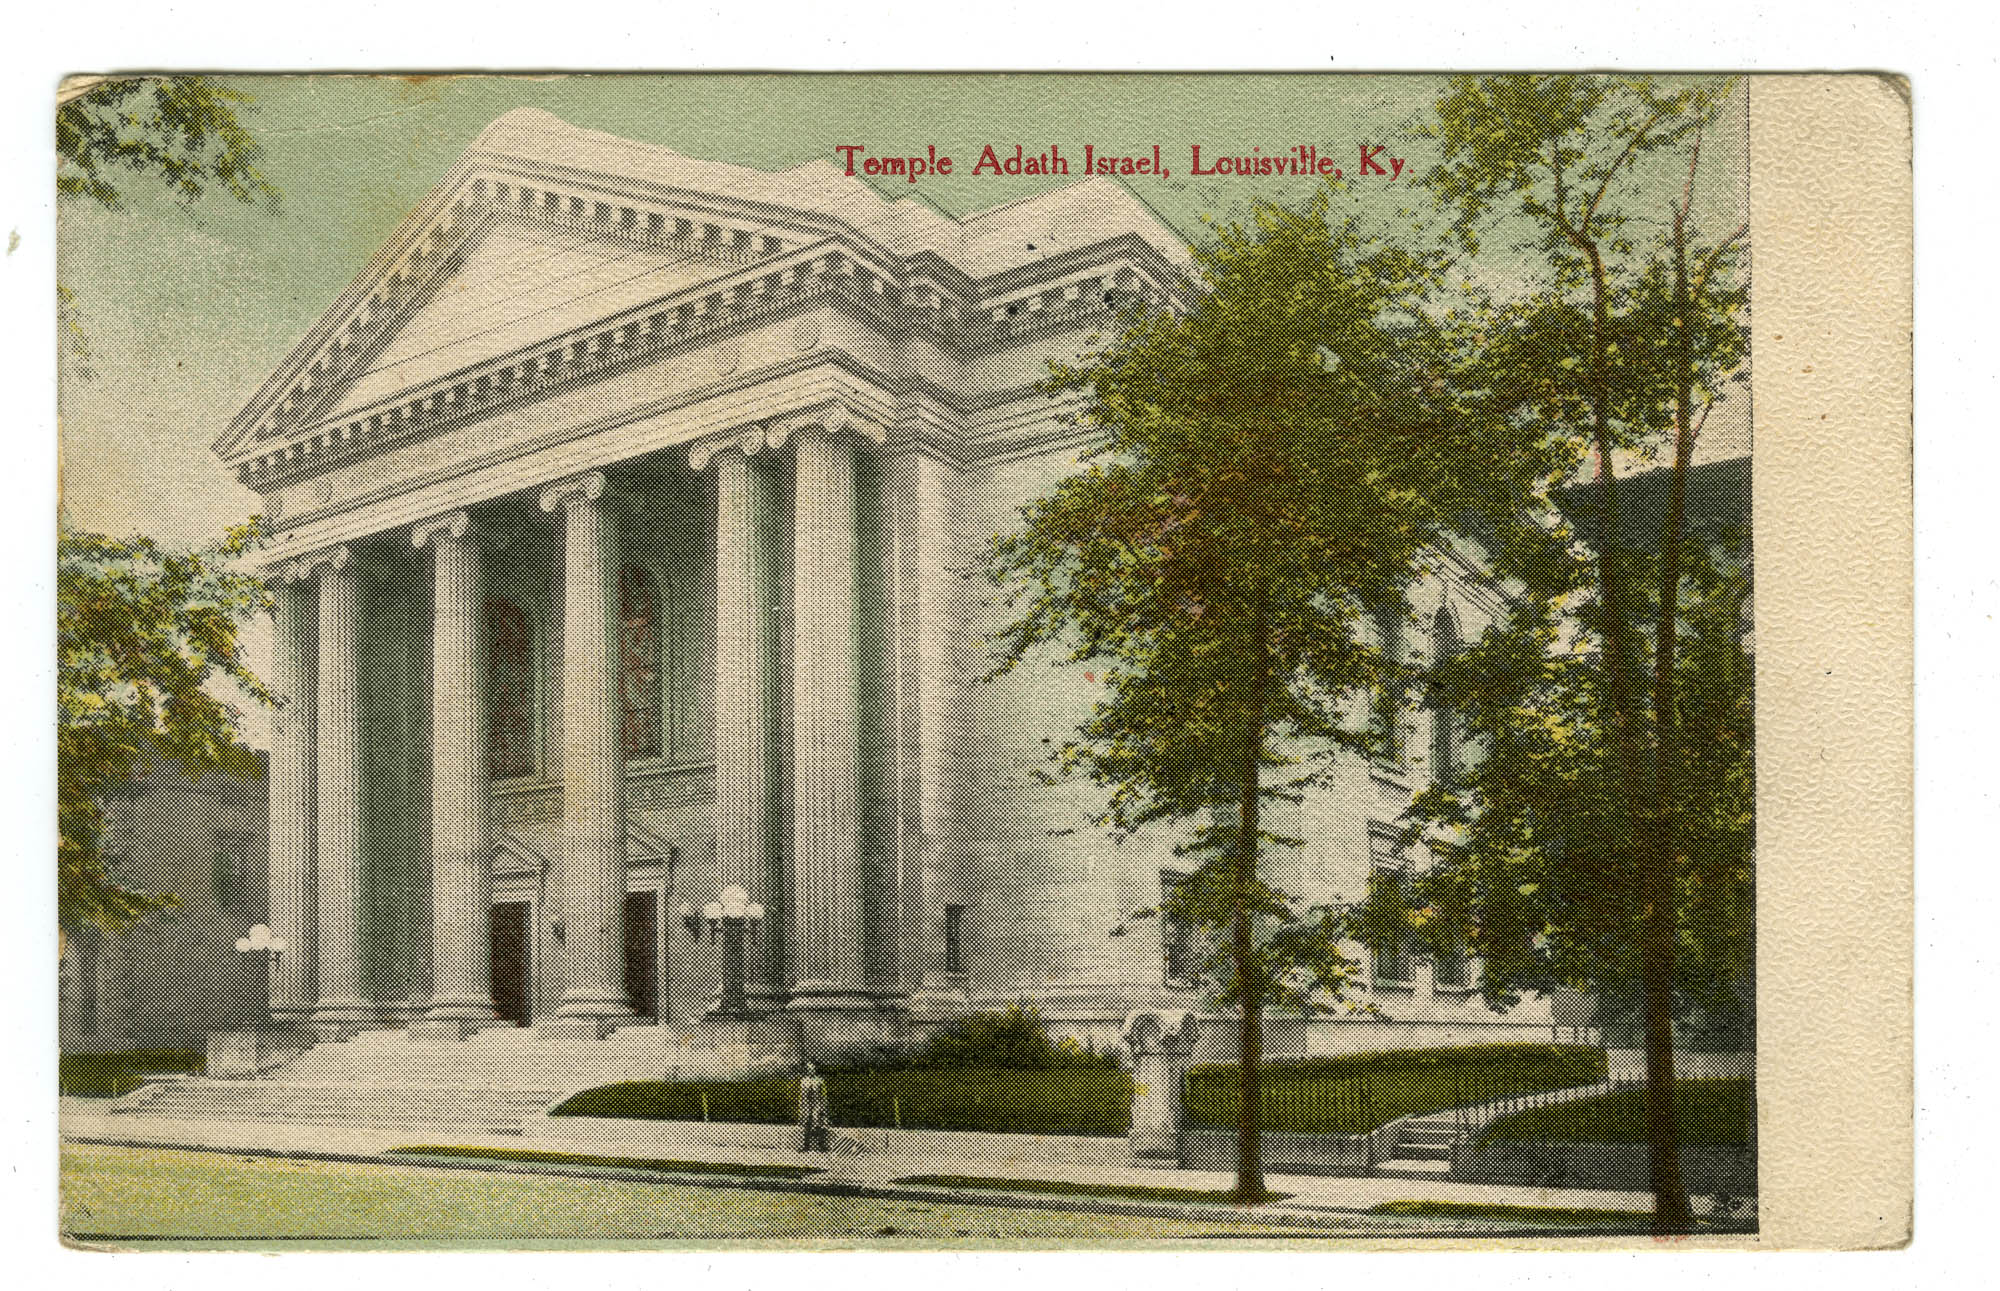 Temple Adath Israel, Louisville, Ky.